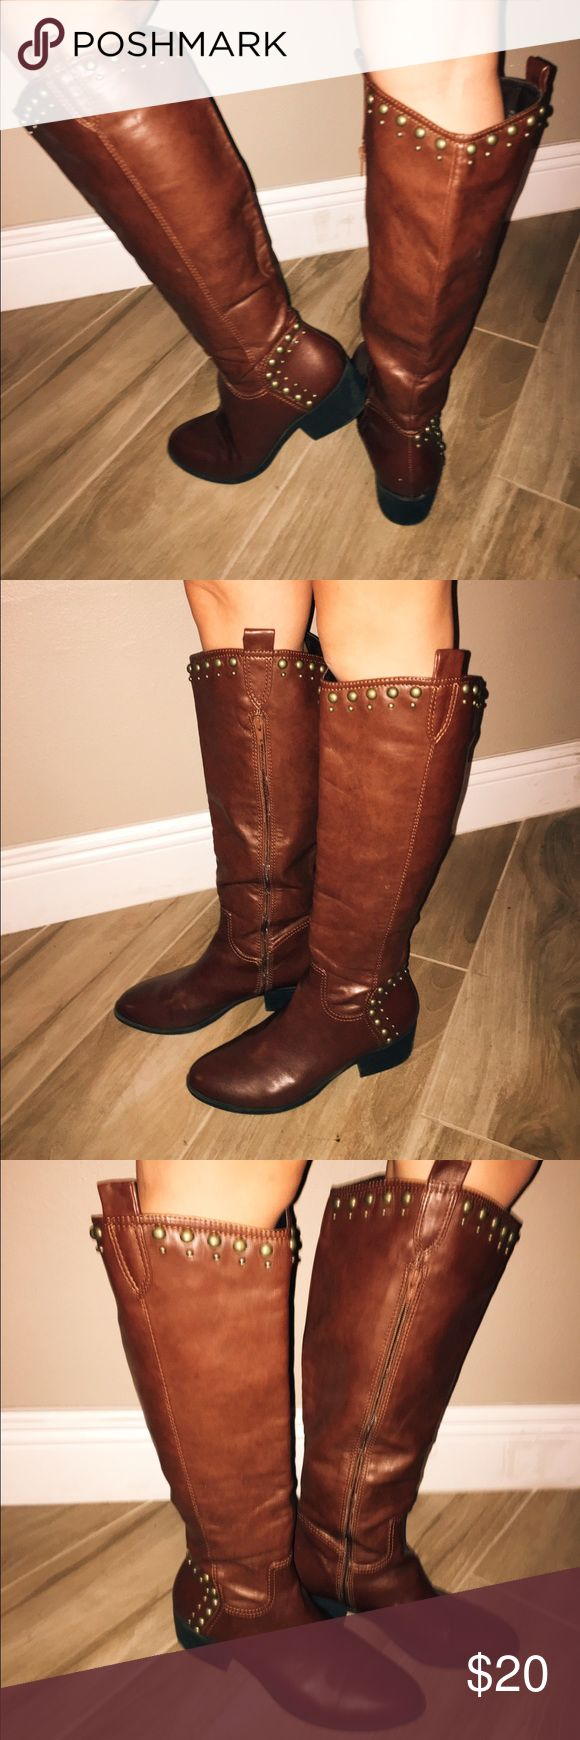 Brown riding boots with gold accents✨ Beautiful brown riding boots with gold accent on the top. Still in great condition, they don't get much use here in Florida!🌞 Shoes